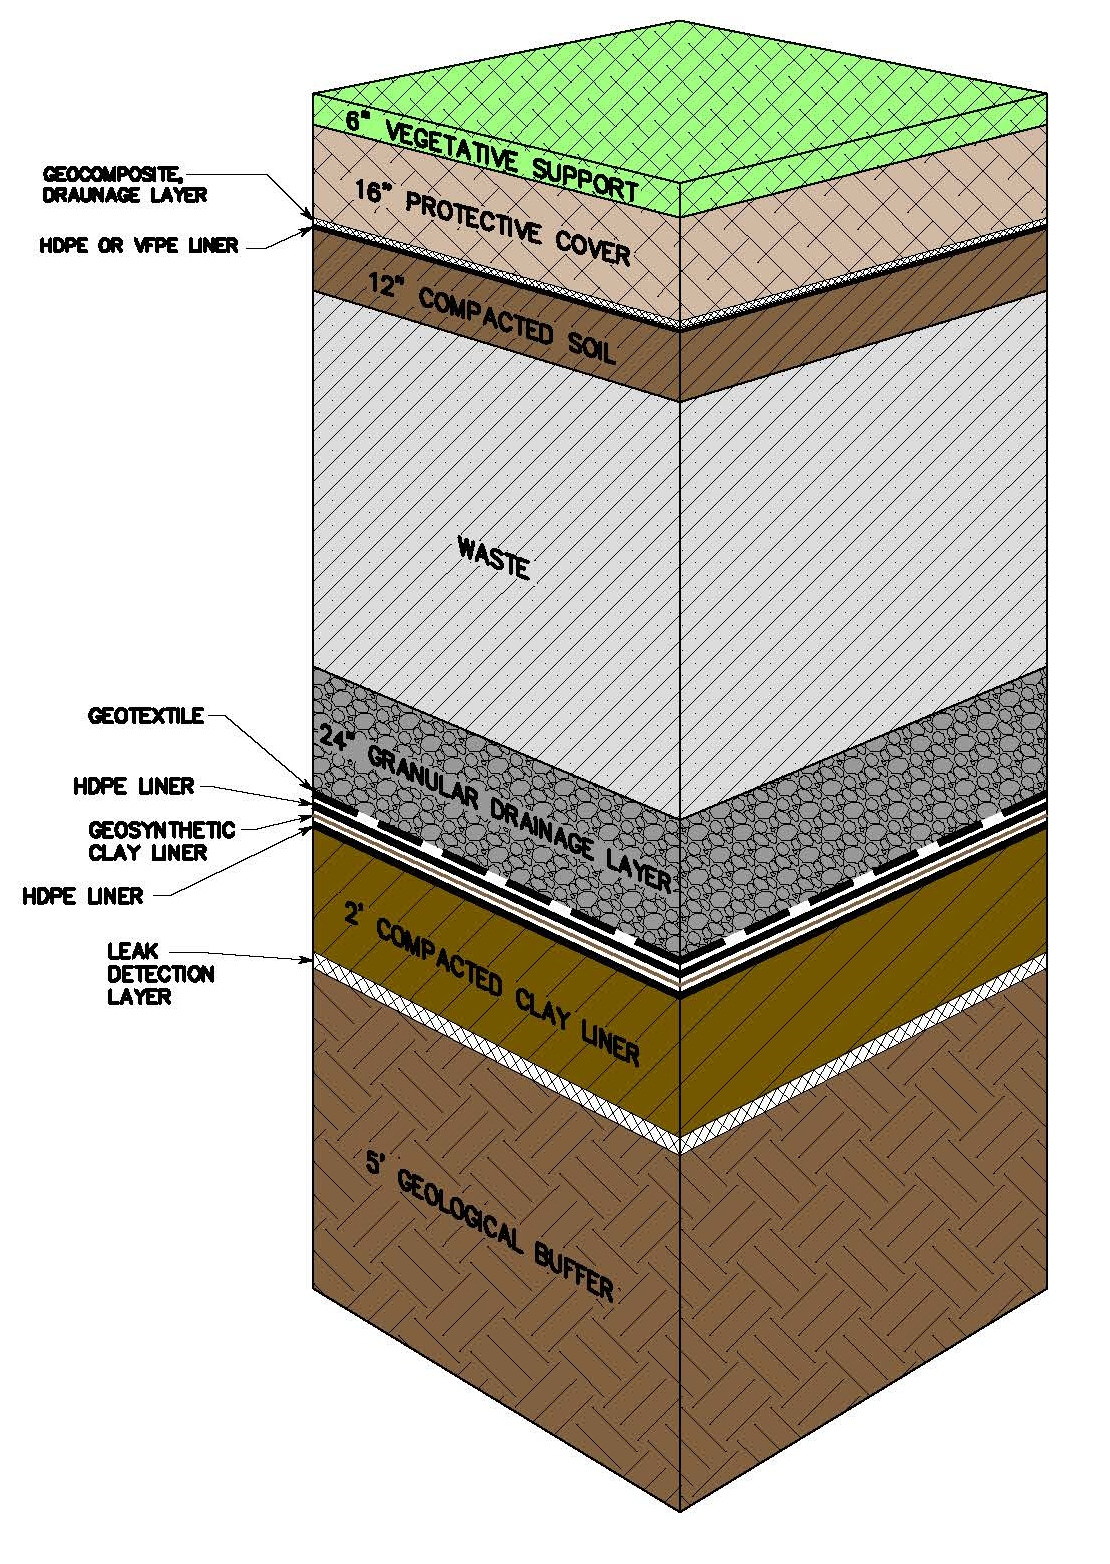 soil layers diagram oil burner wiring hoover mason recycling about us